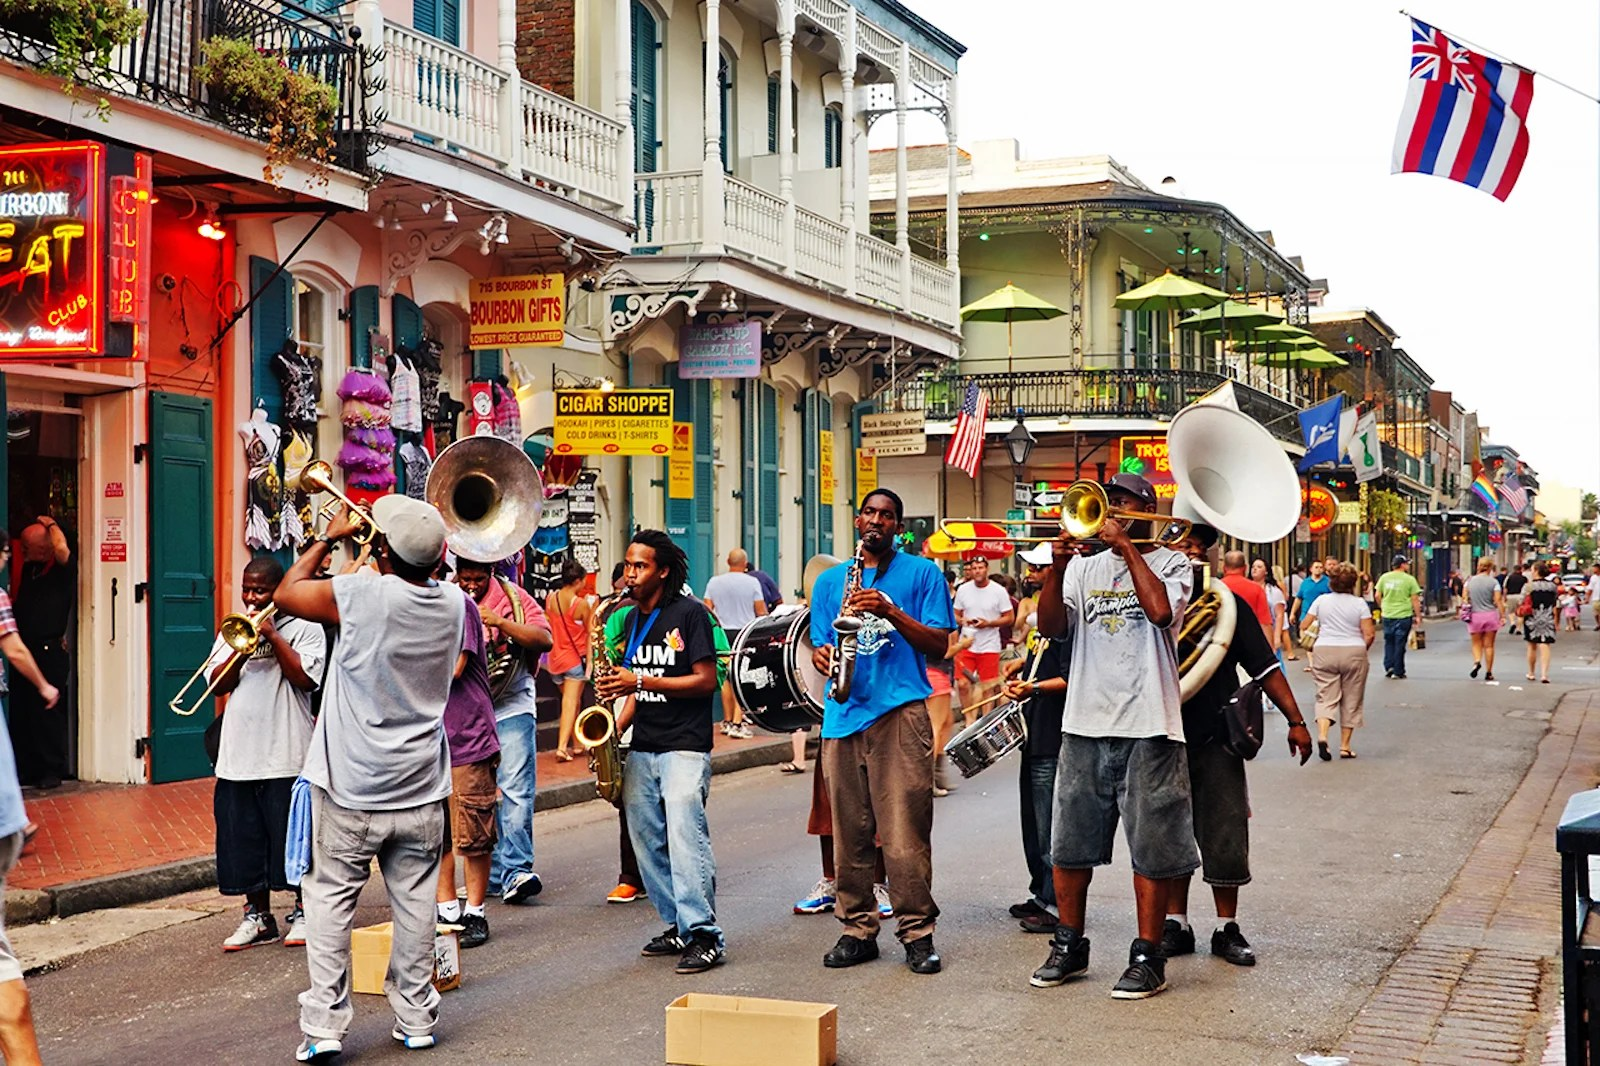 (A jazz band plays on Bourbon St. Photo by by Simplyphotos/Getty Images)